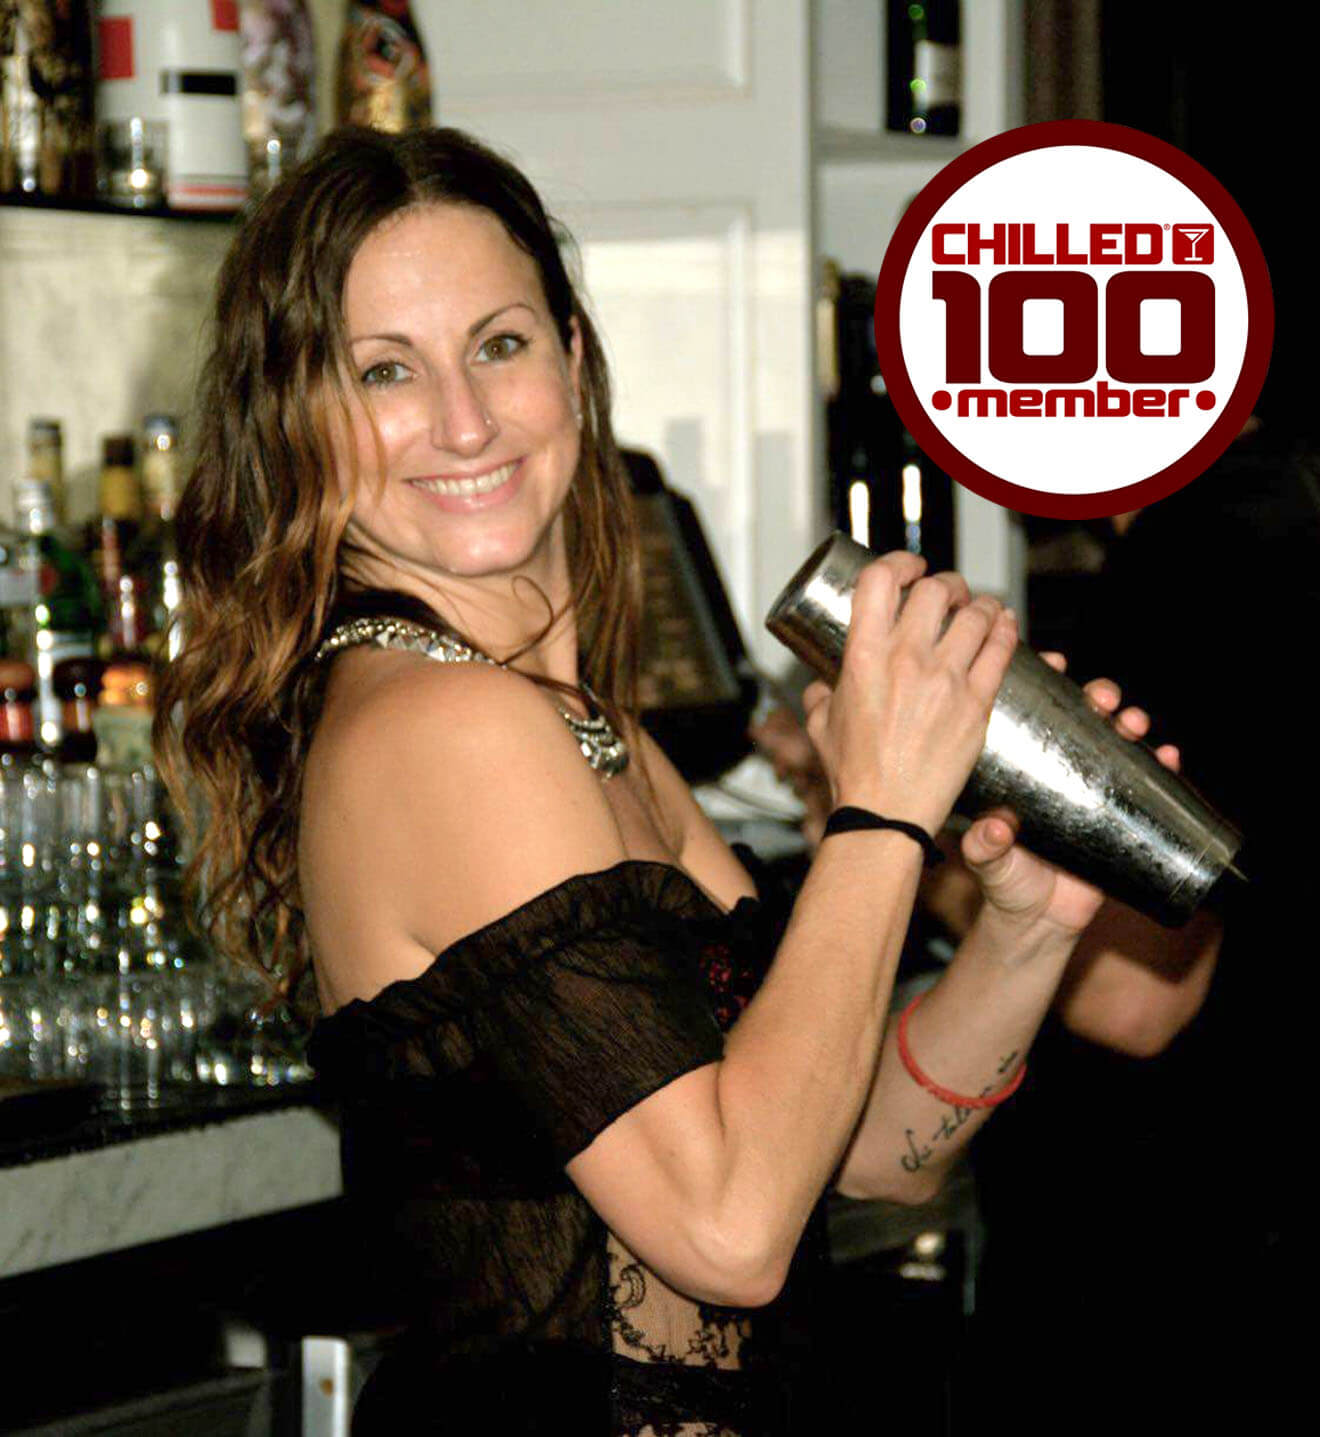 Chilled 100 Member and Mixologist Amanda Barton